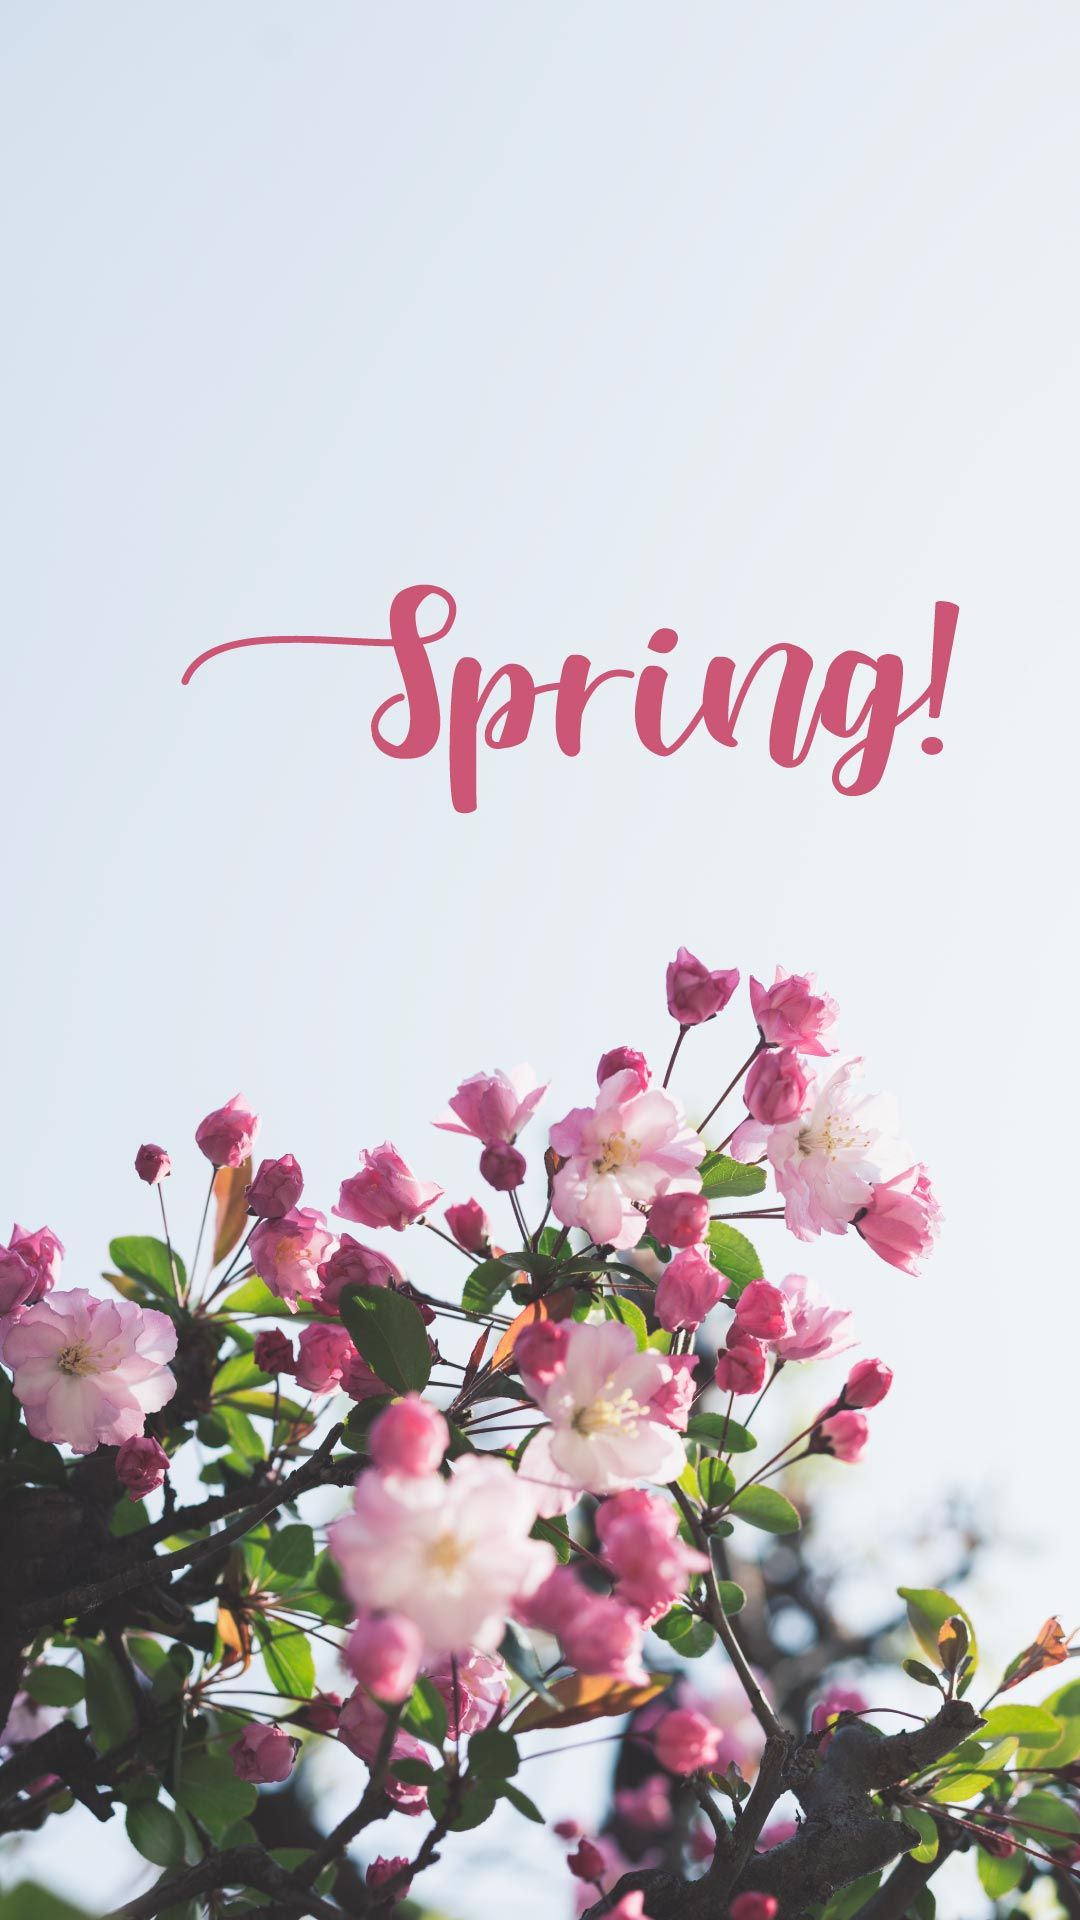 Spring Free Mobile Wallpaper For Iphone And Android Spring Wallpaper Mobile Wallpaper Android Wallpaper Free iphone wallpaper spring